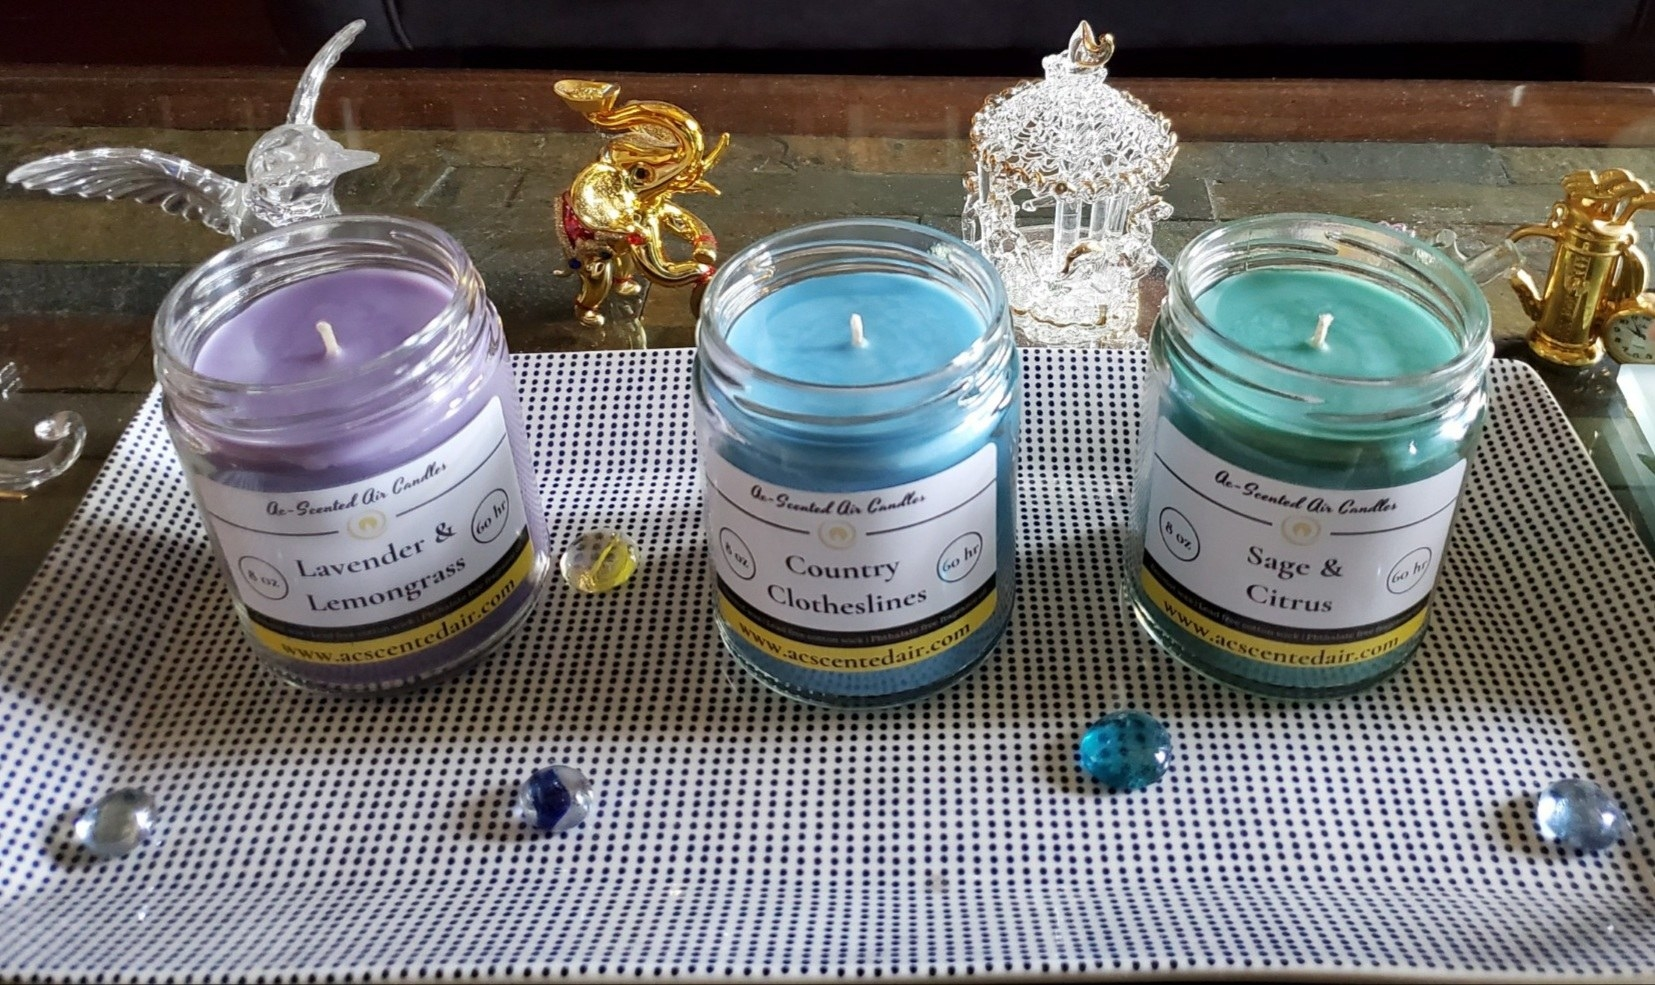 three glass candles in purple, blue, and green